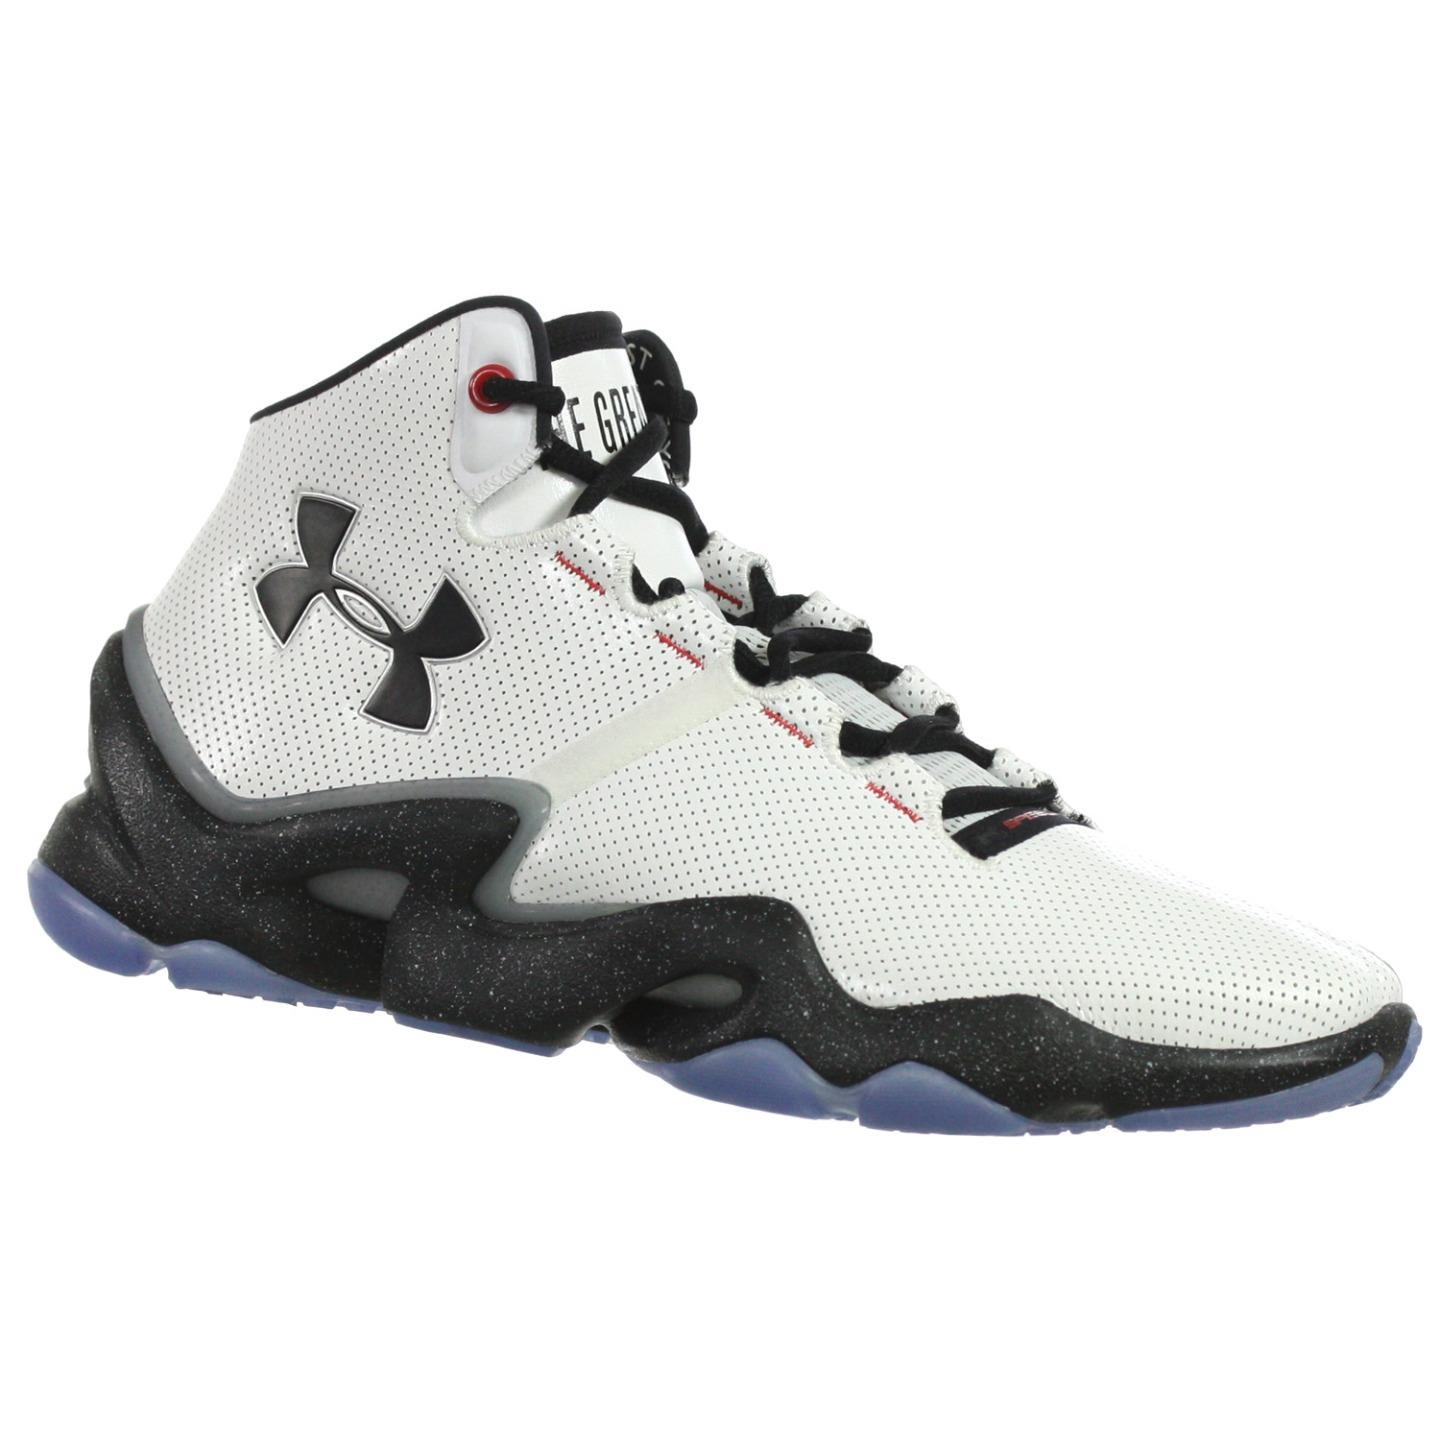 Under Armour MENS ATHLETIC SHOES SPEEDFORM PHENOM ALI WHI...